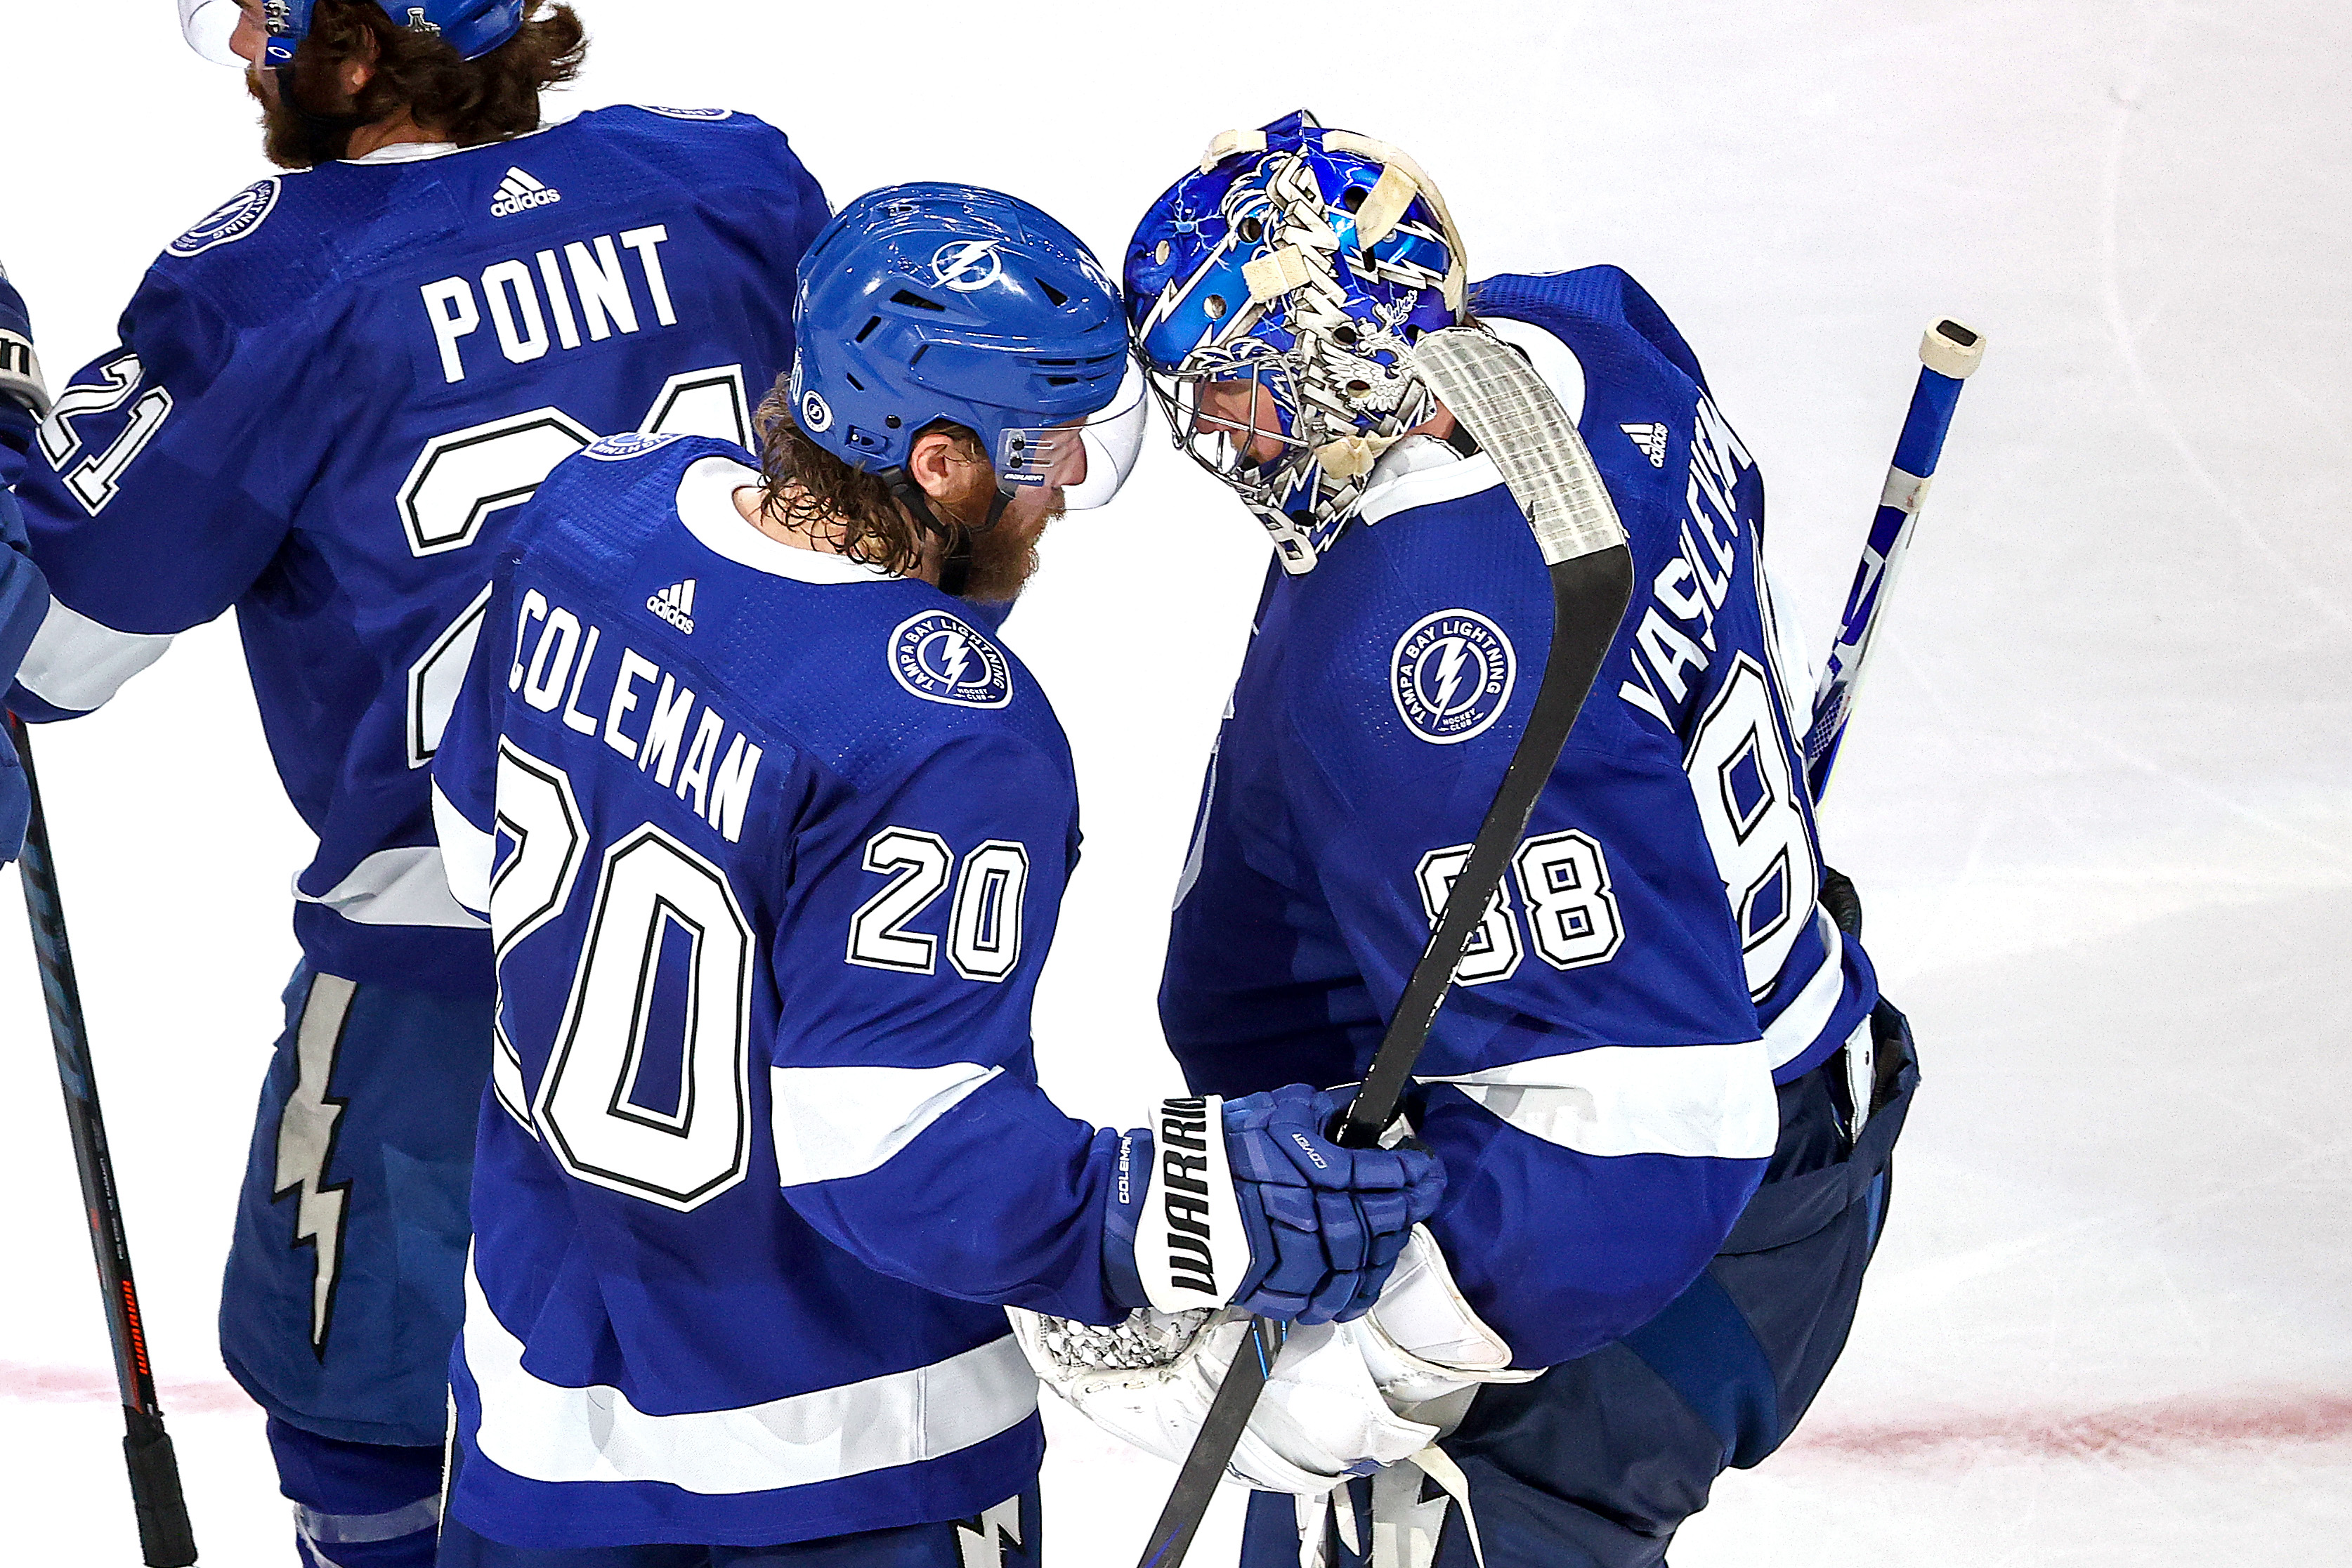 EDMONTON, ALBERTA - SEPTEMBER 21: Blake Coleman #20 and Andrei Vasilevskiy #88 of the Tampa Bay Lightning celebrate the teams 3-2 victory against the Dallas Stars in Game Two of the 2020 NHL Stanley Cup Final at Rogers Place on September 21, 2020 in Edmonton, Alberta, Canada.